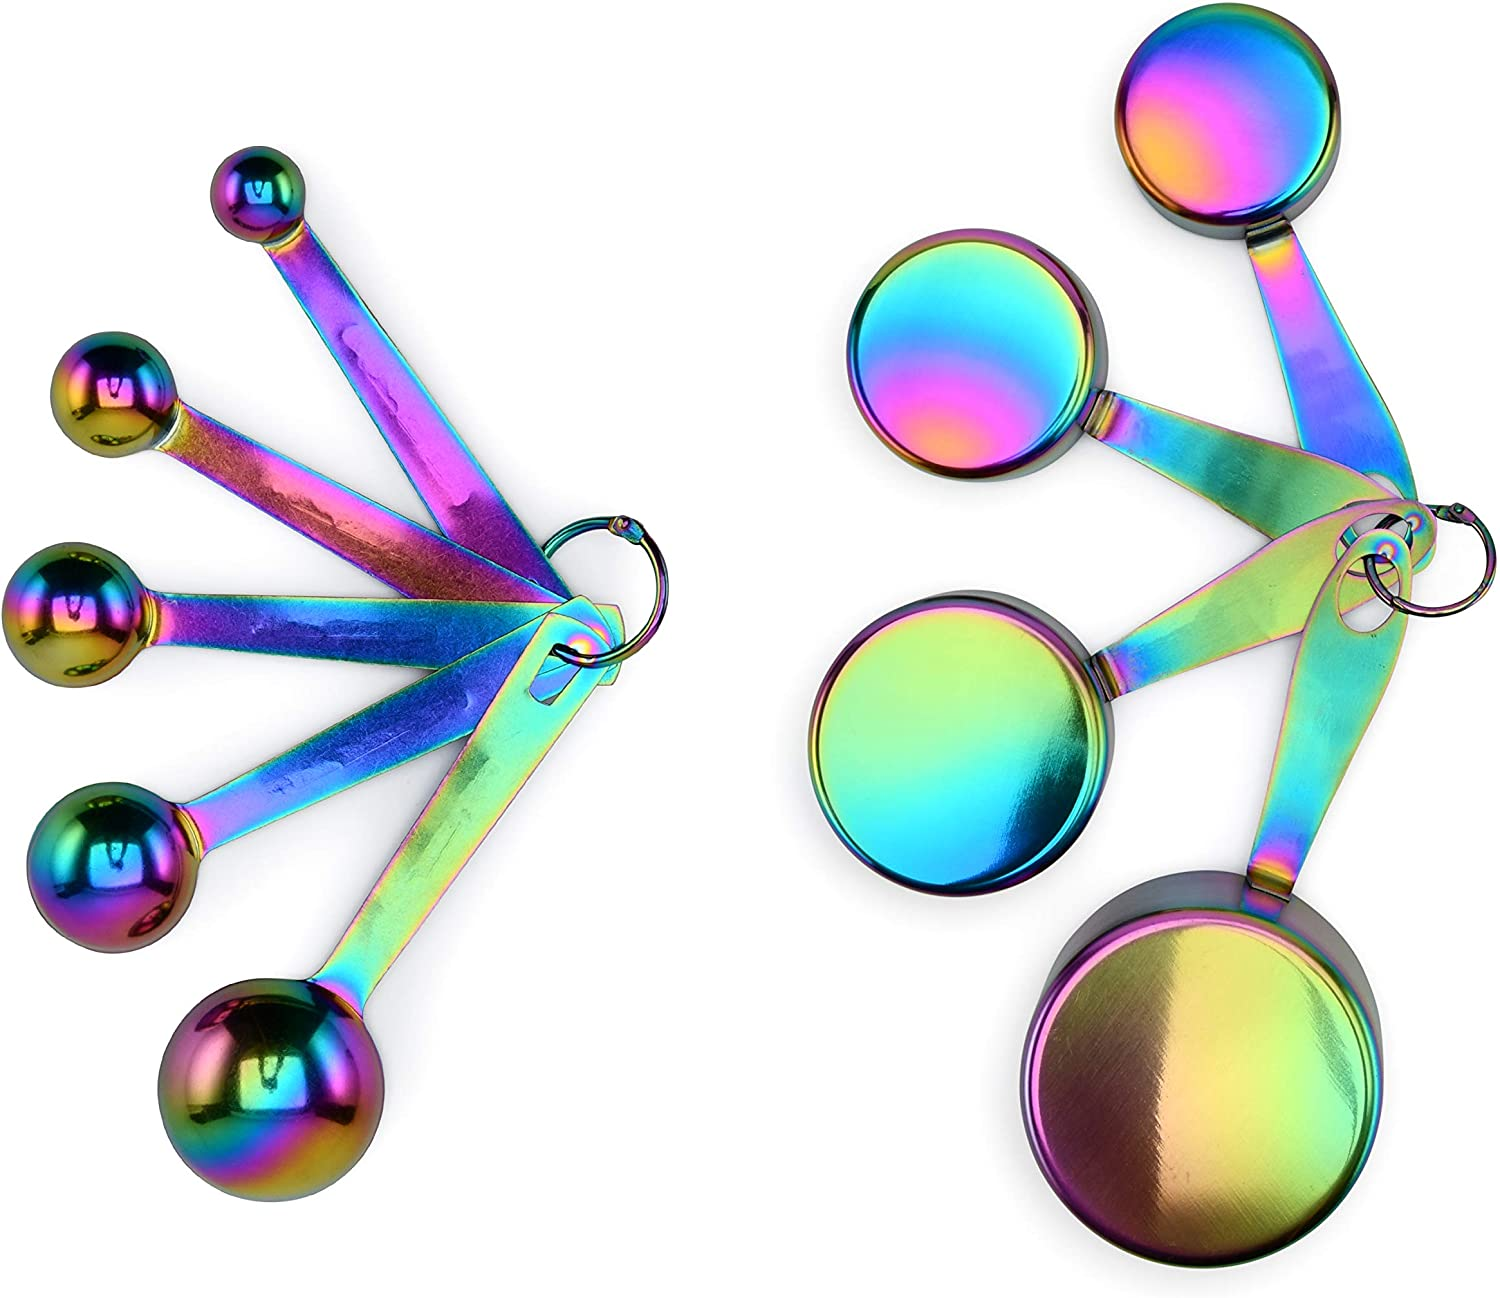 Measuring Cups and Spoons Set, 9 Pieces, Stackable, Titanium-Coated Stainless Steel, Engraved Measurements, Rainbow, Multi-colored